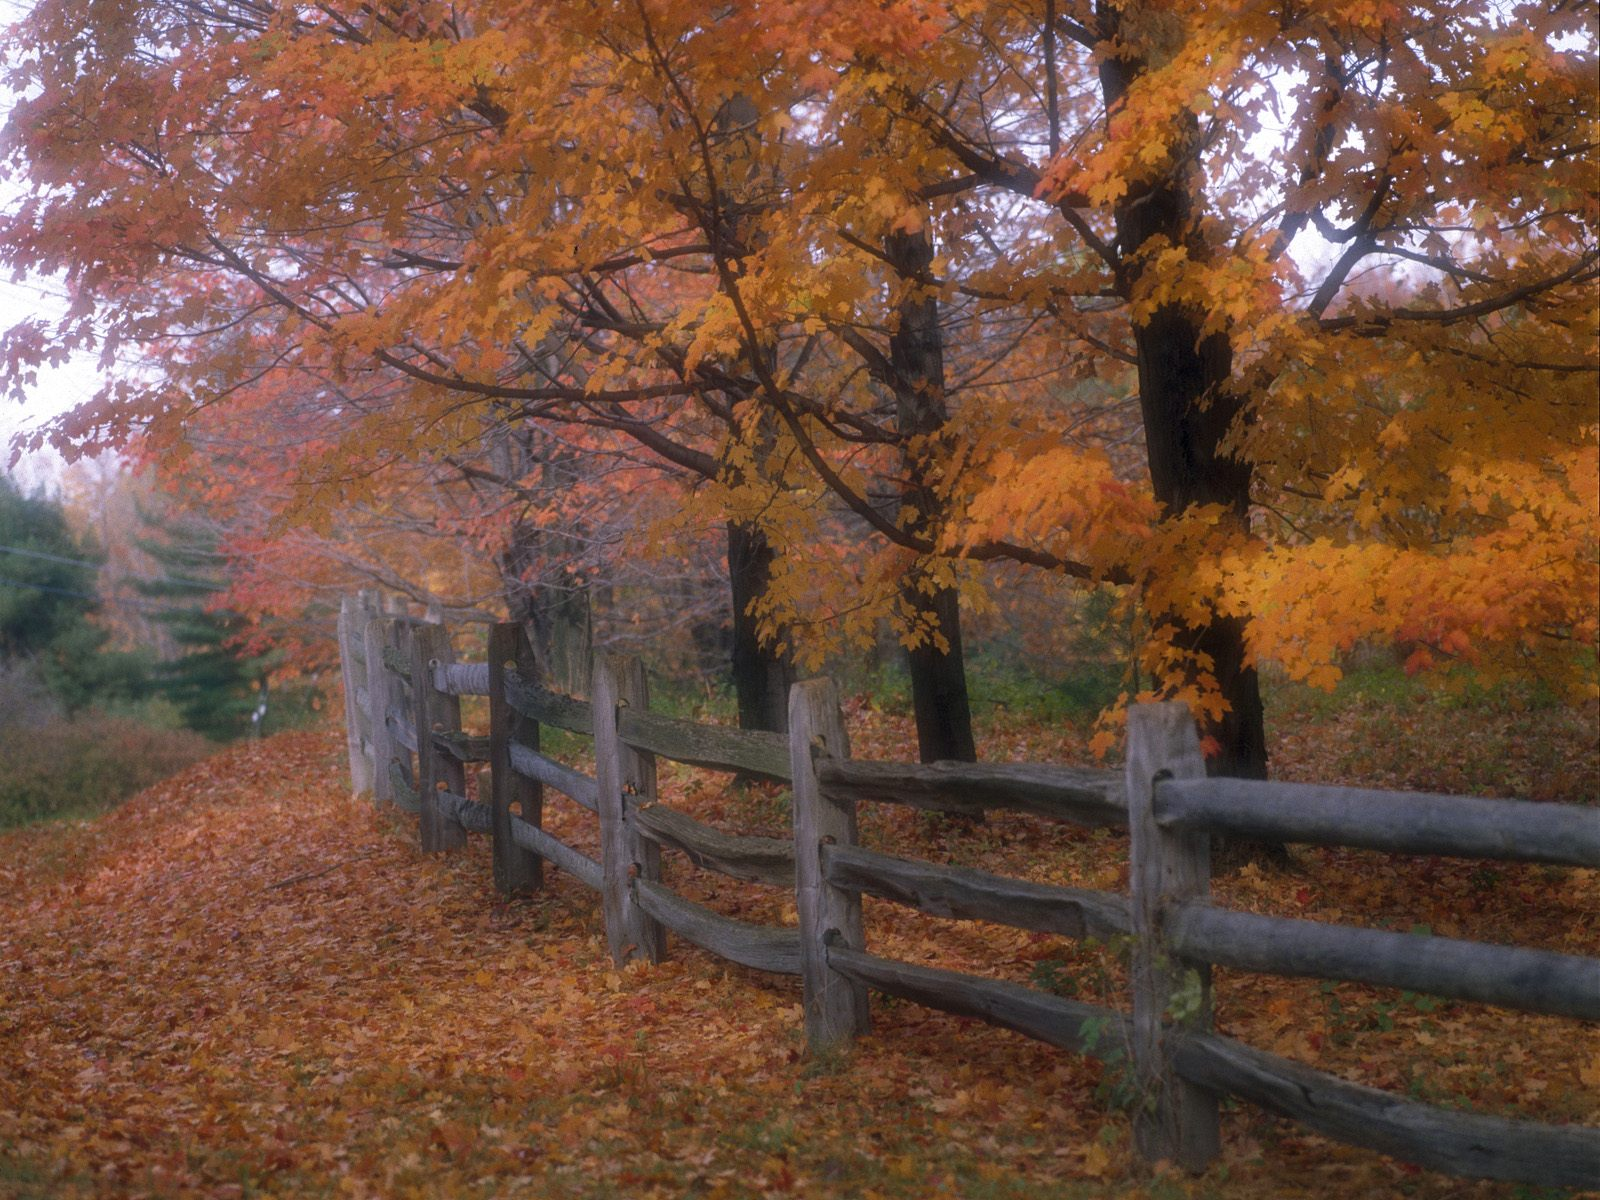 1600x1200 Country fence desktop PC and Mac wallpaper 1600x1200